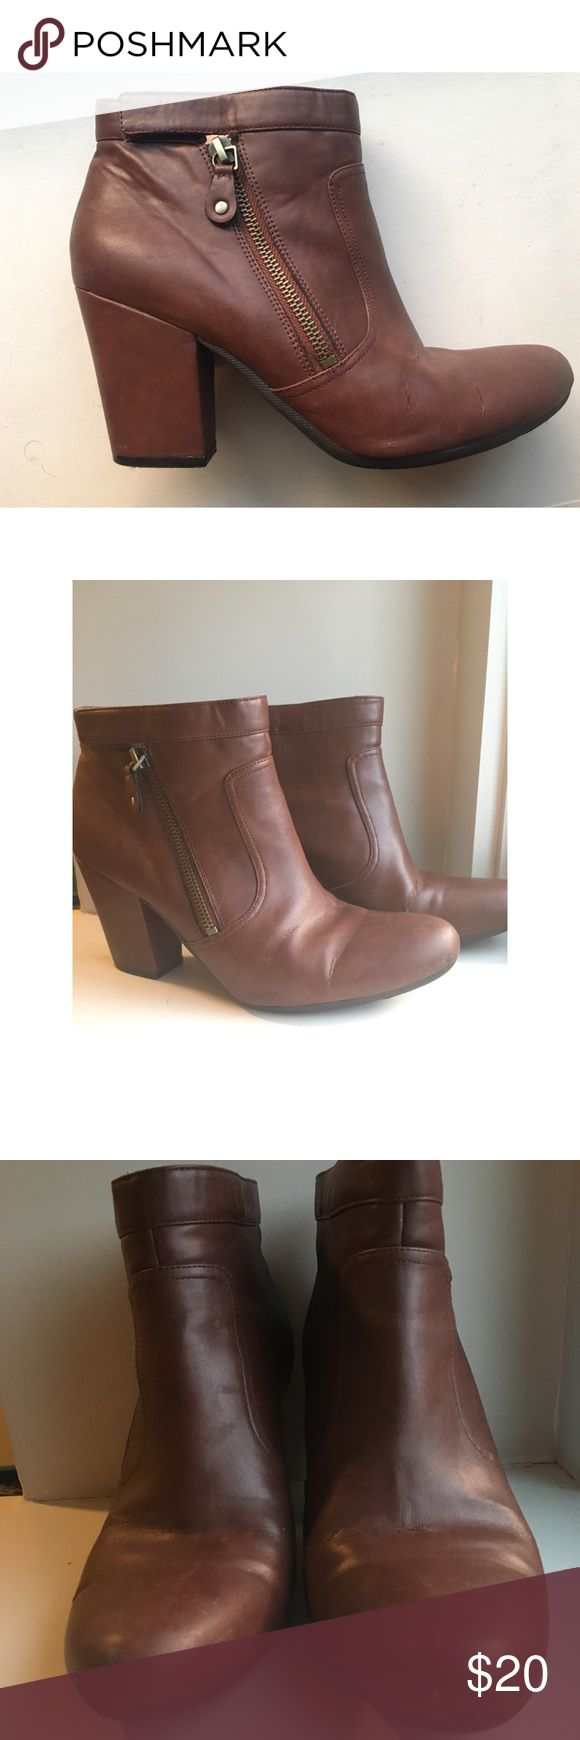 Easy Spirit Brown Heeled Ankle Boots Gently worn Easy Spirit heeled Ankle boots. There's a few small tests facing in, as pictured. Otherwise these boots are in great shape. These would be a cute way to dress up any outfit. Size 8. Easy Spirit Shoes Heeled Boots